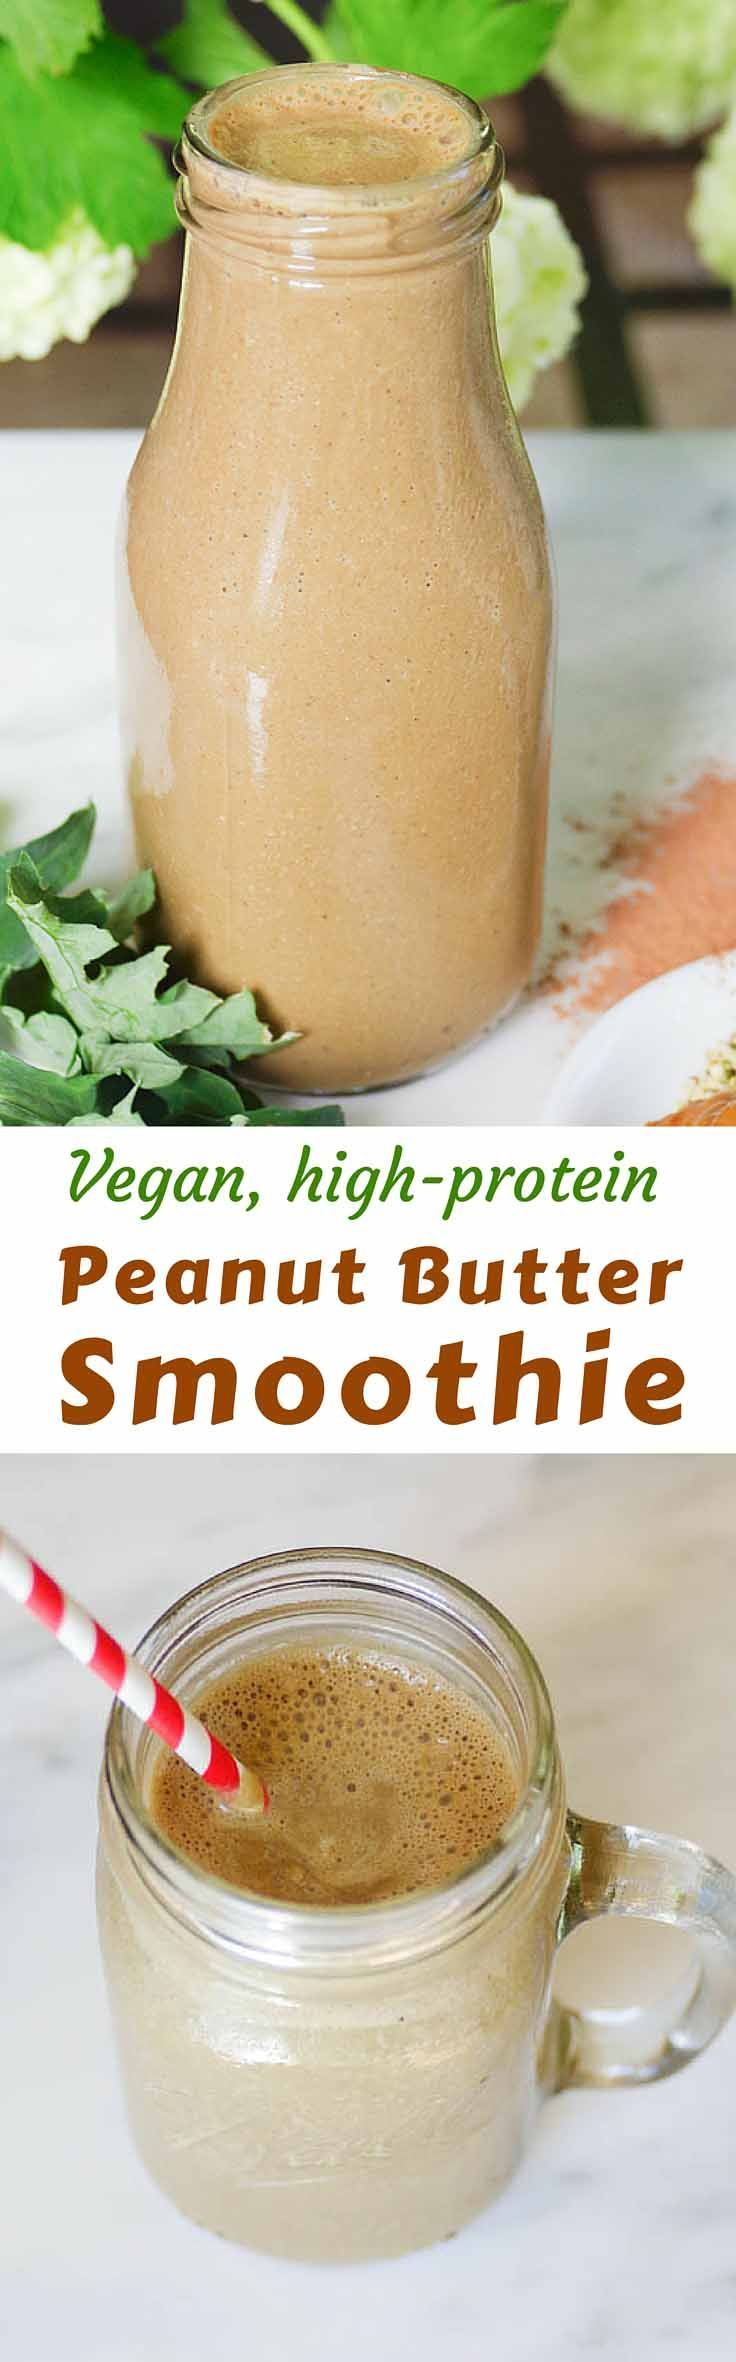 Vegan Peanut Butter Protein Smoothie - Packed with fruit, veggies, and protein, this smoothie provides the perfect nutrient boost for a quick post-workout shake │TheFitBlog.com